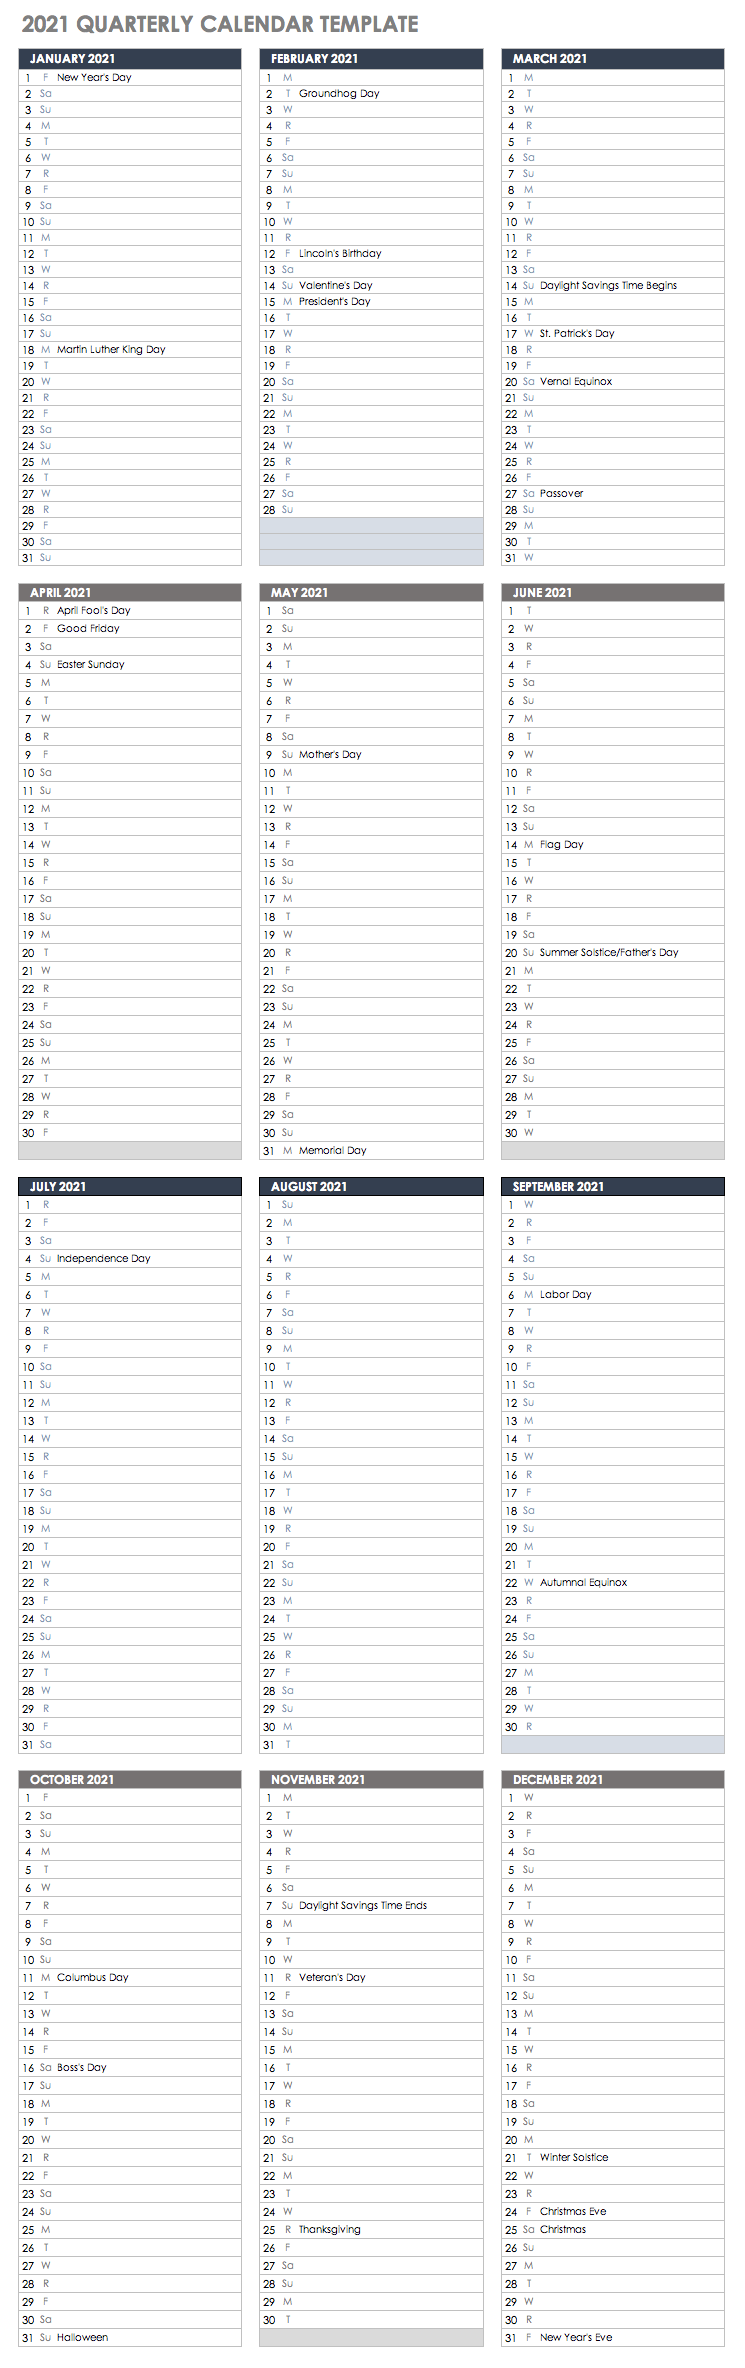 2021 Quarterly Calendar Template